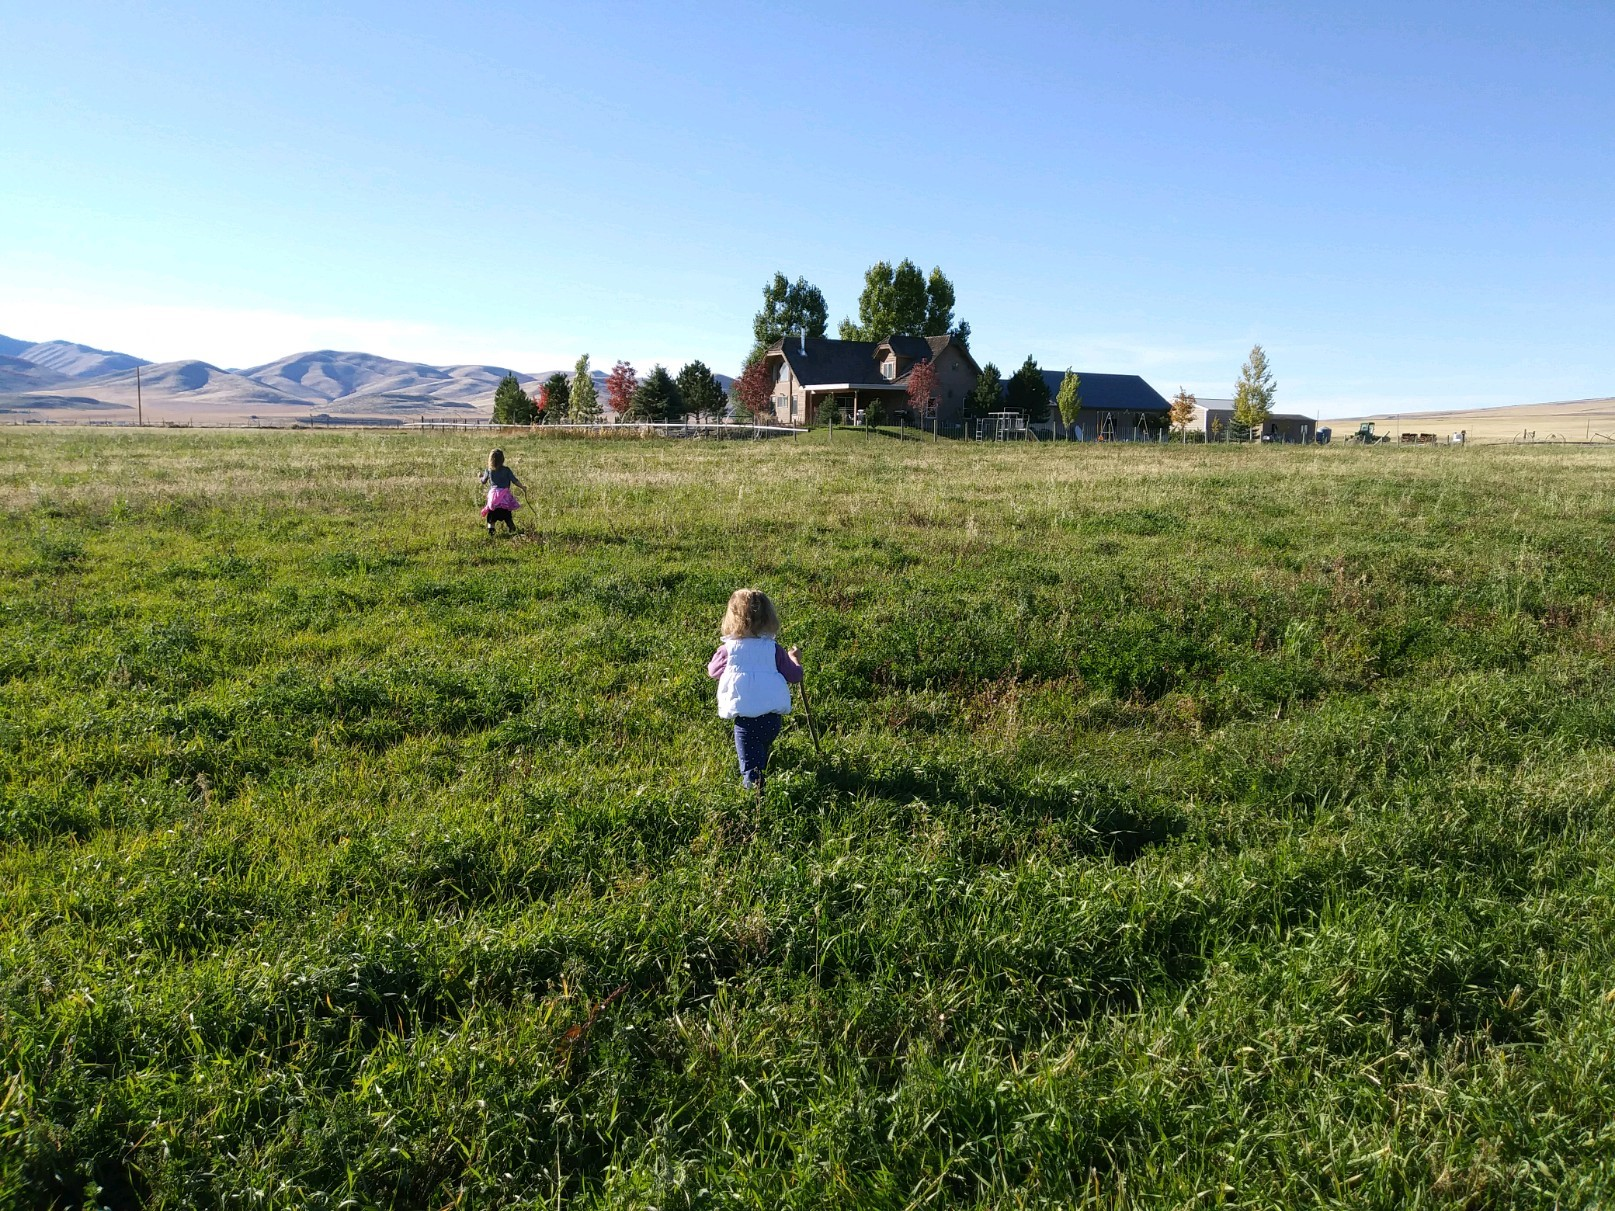 Children running through the field toward the house